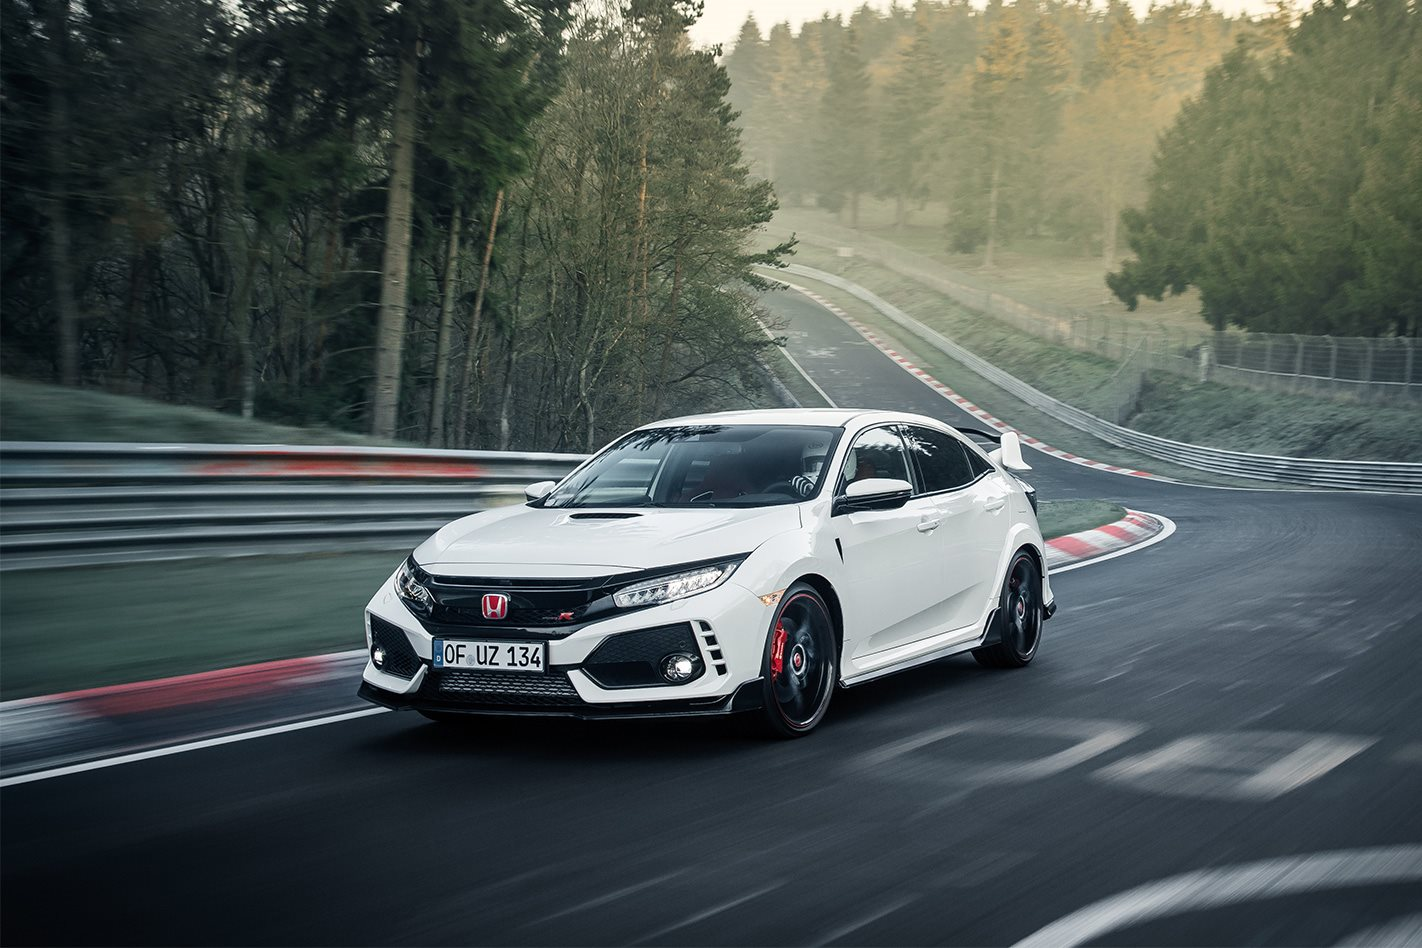 2017 honda civic type r smashes nurburgring lap record